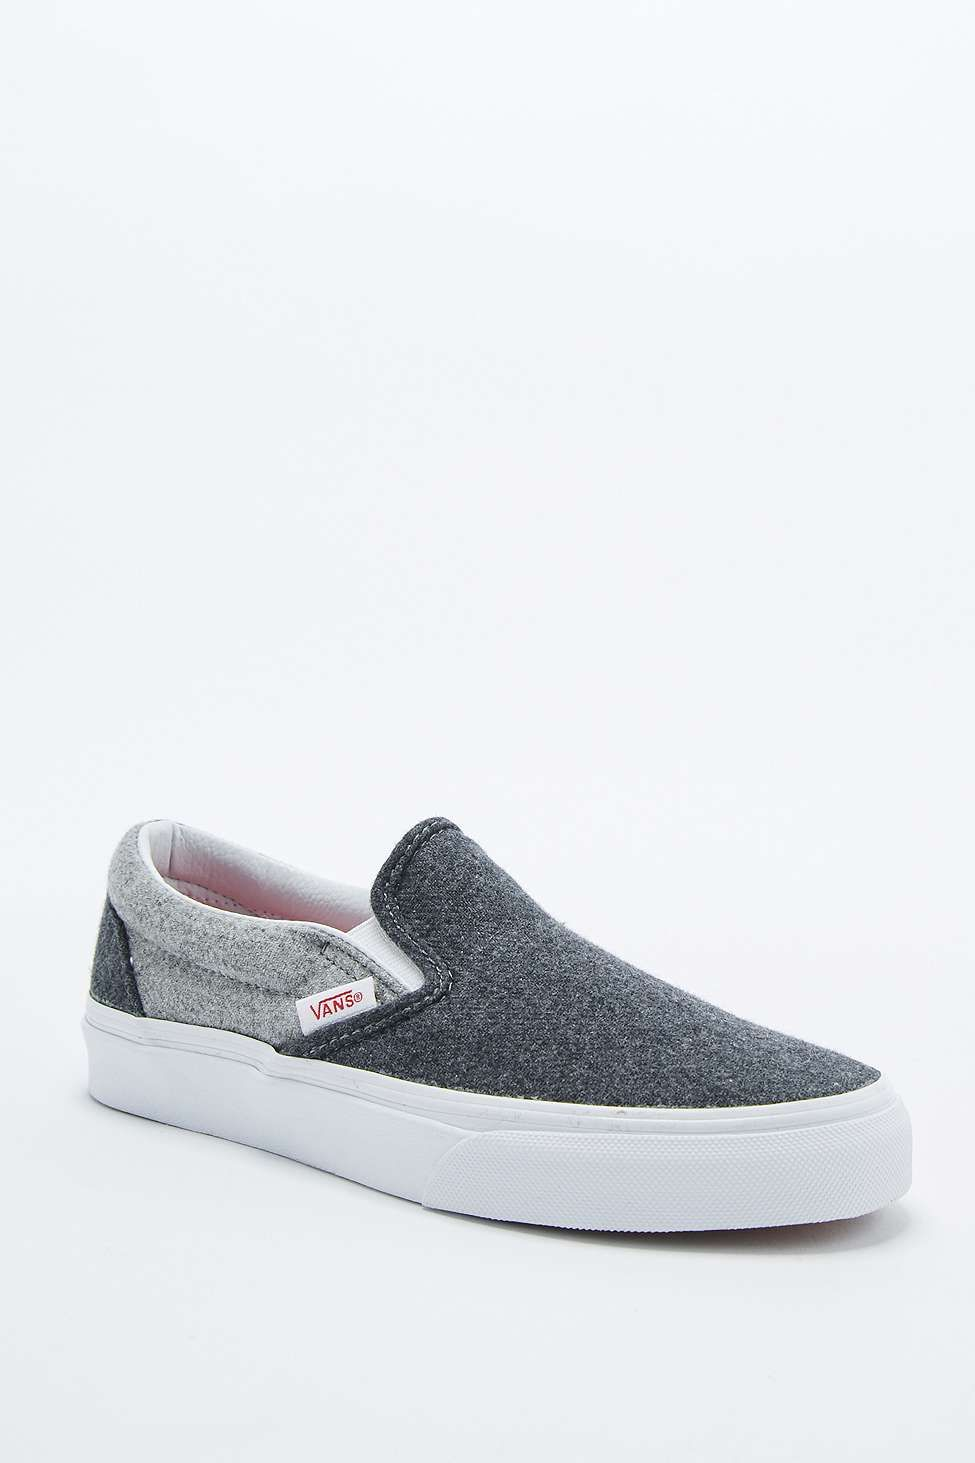 1669b4f9204c Vans Slip-On Classic Grey Flannel Trainers Vans Slip On Shoes